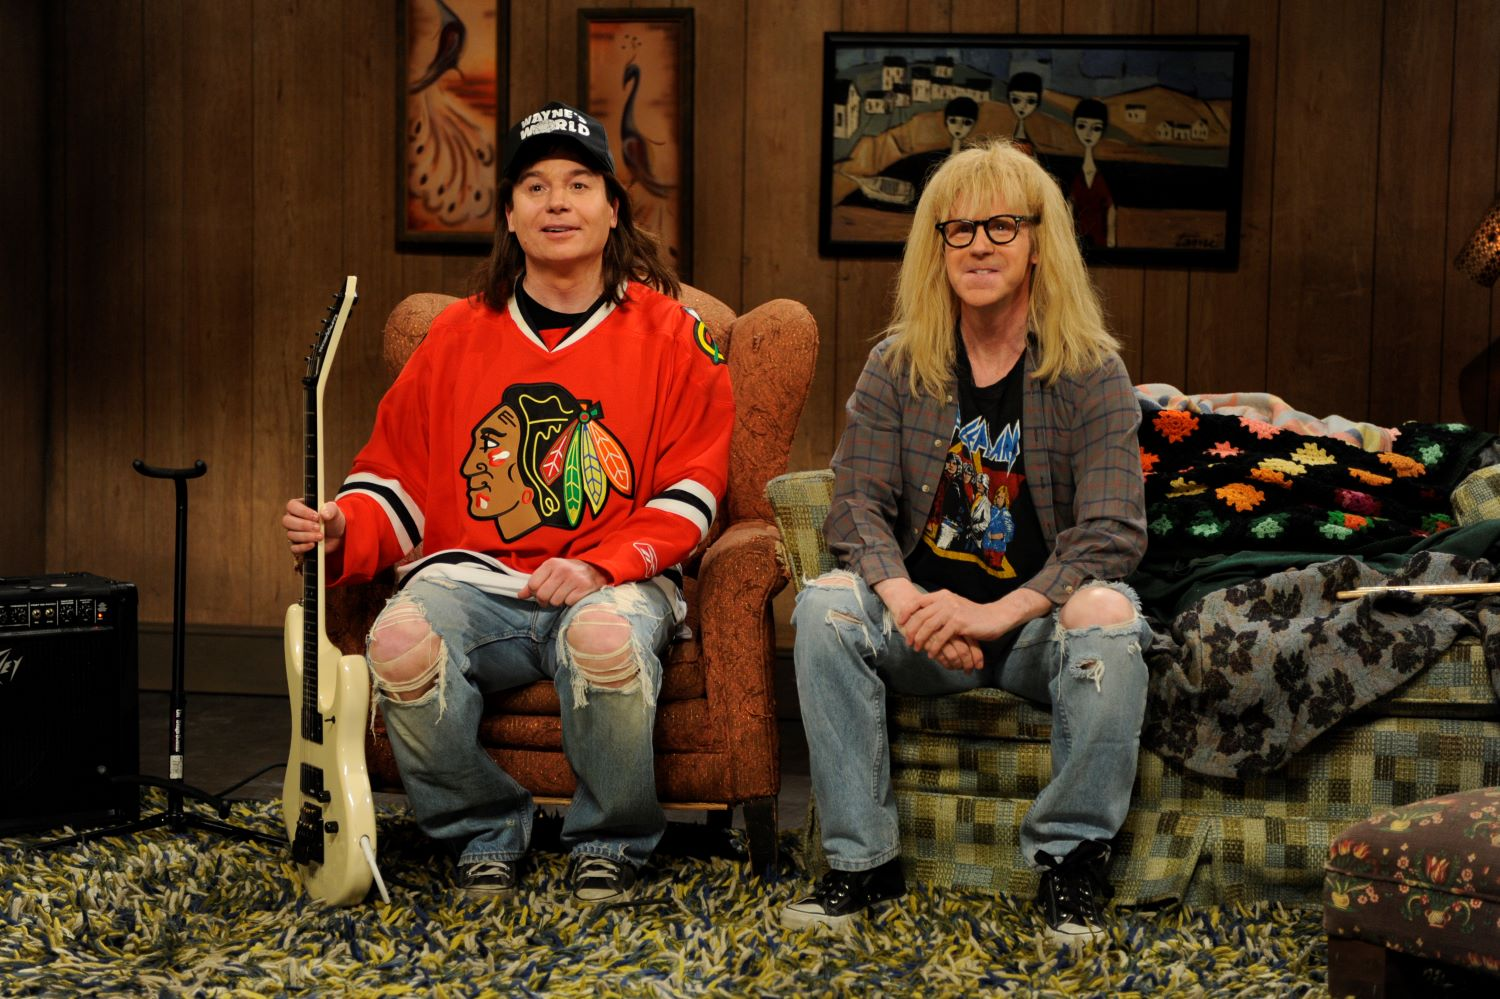 Mike Myers and Dana Carvey in 'Wayne's World' sketch on 'SNL'